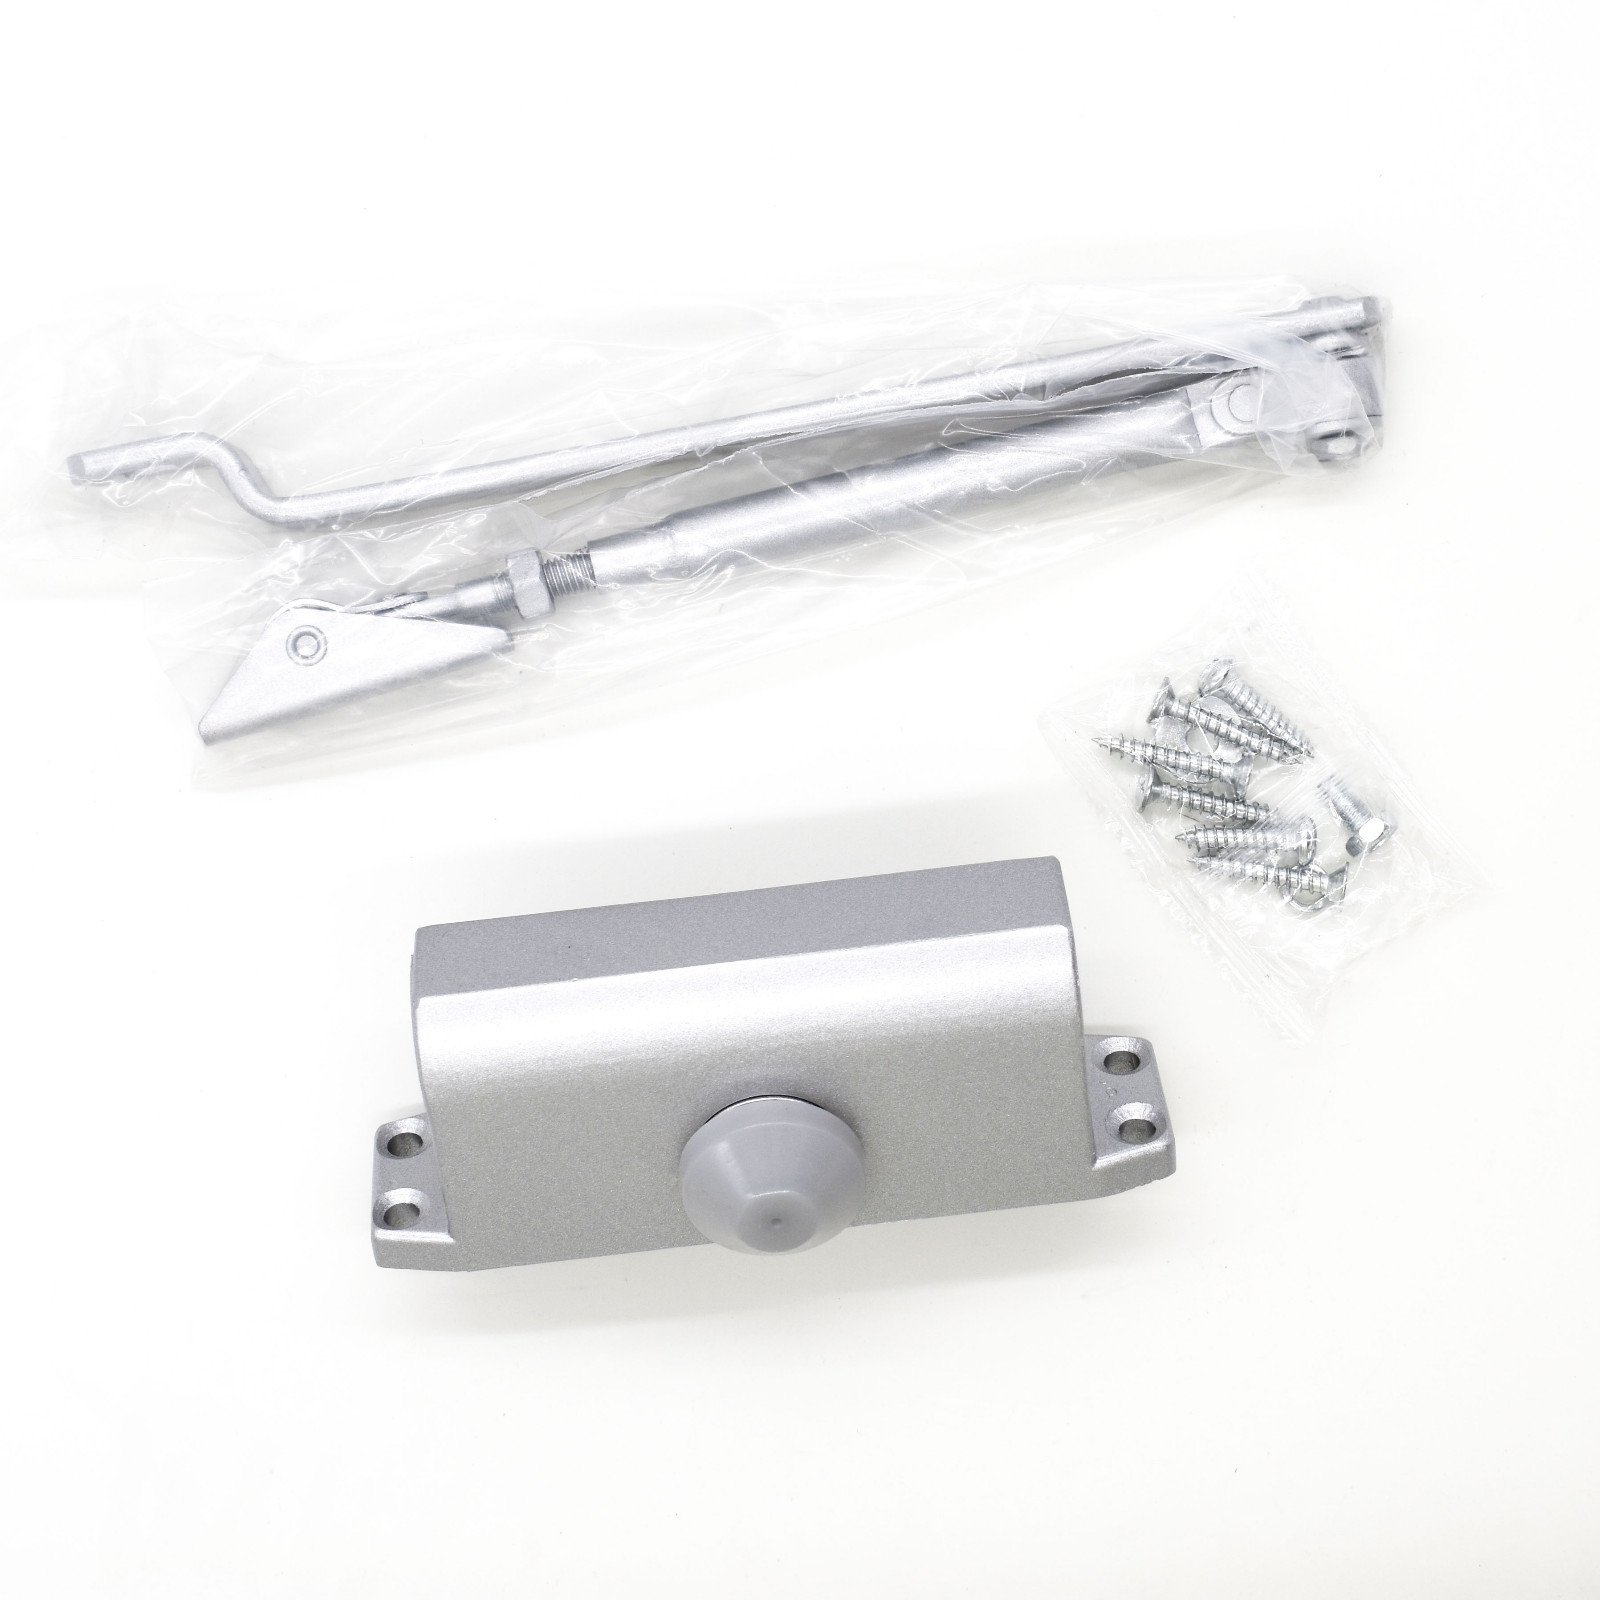 Kerui Furniture Hardware automatic door closer round closers hexagonal hidden